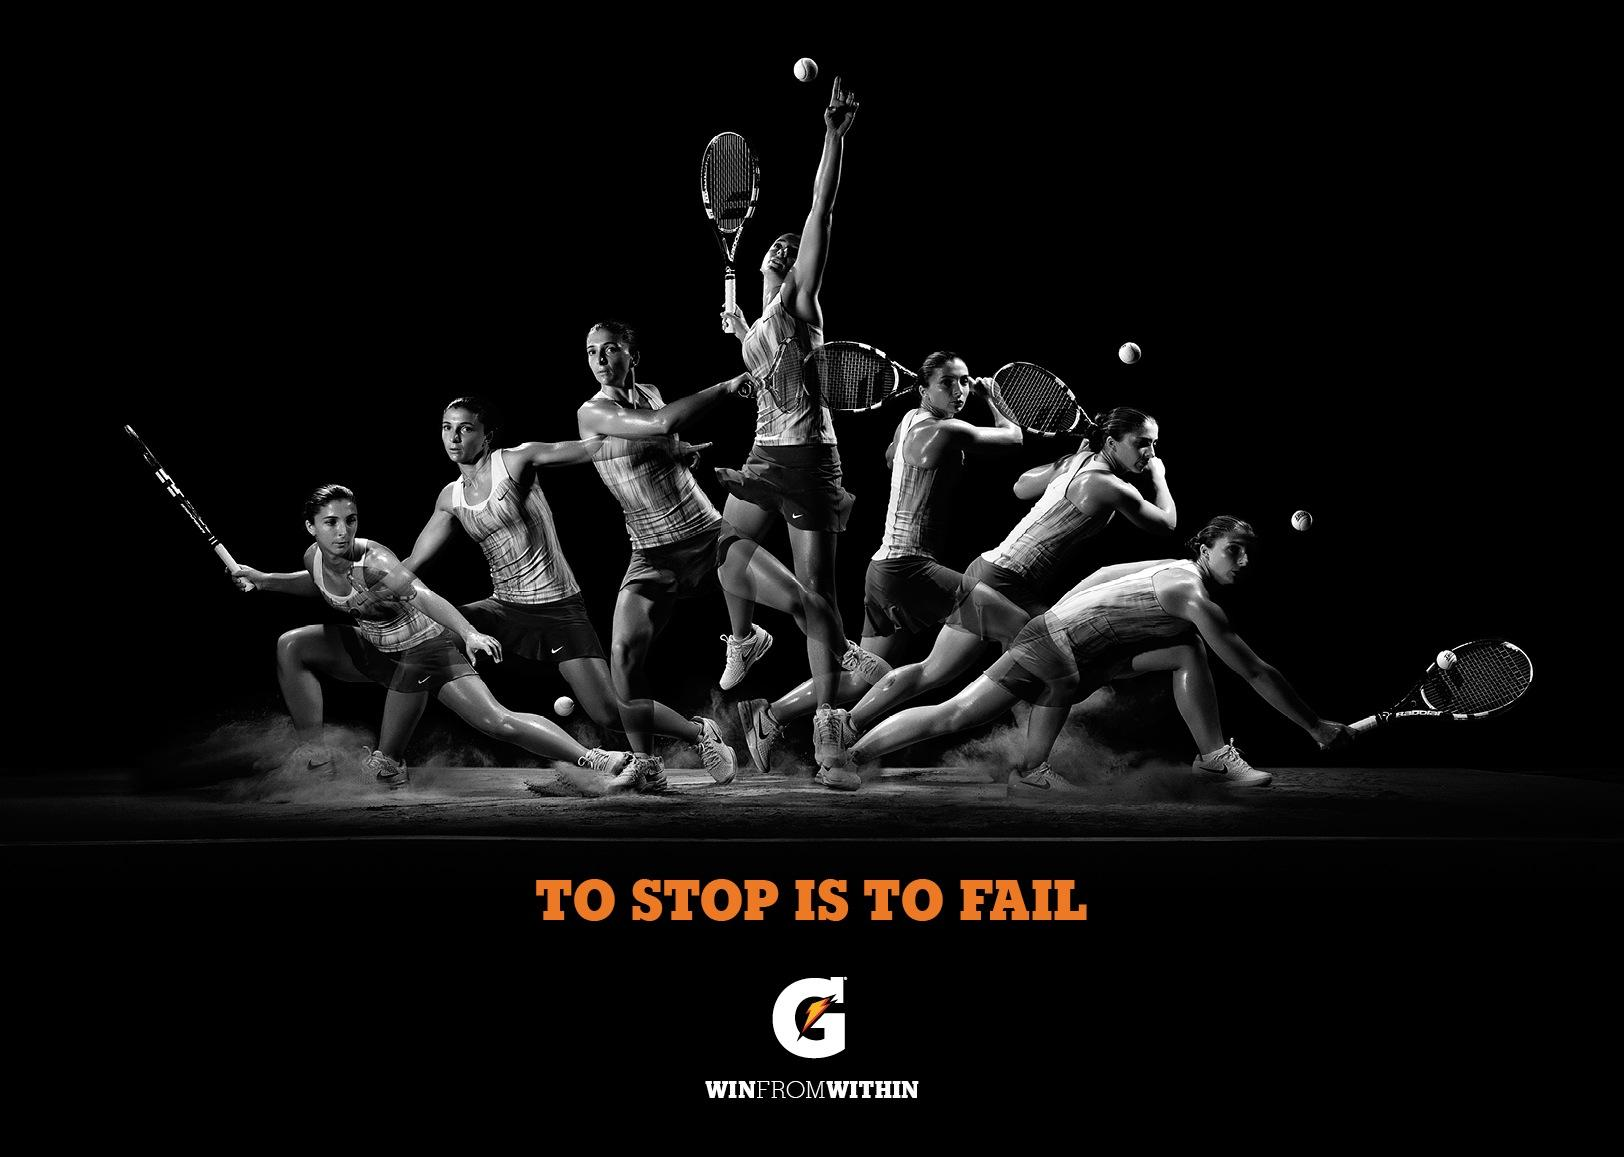 Gatorade Print Ad -  To stop is to fail, 2